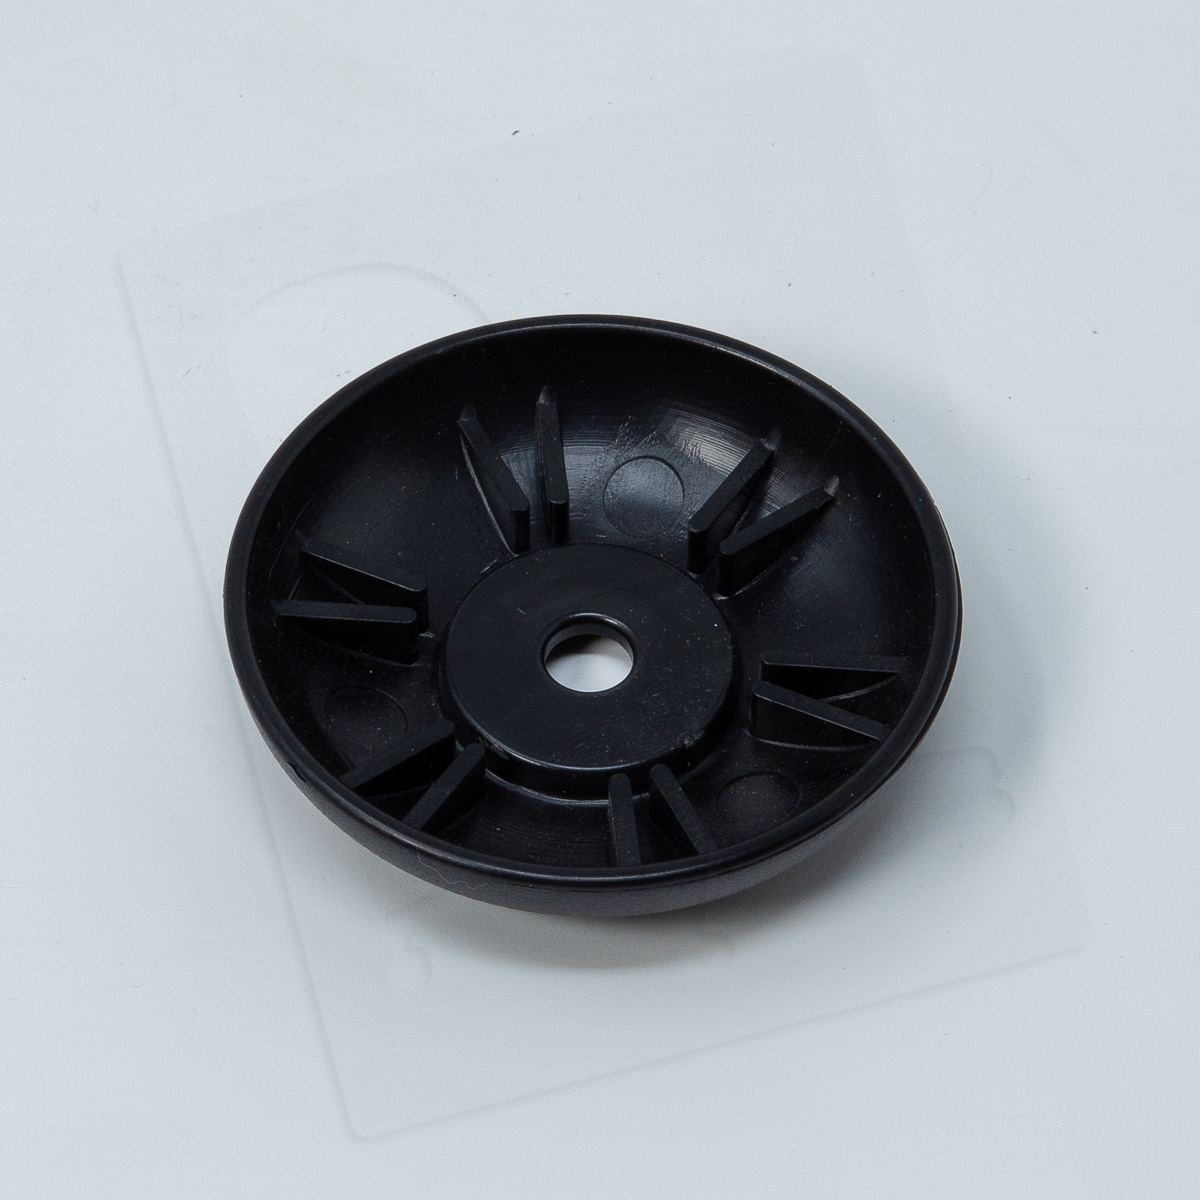 Crandall Office Furniture Aftermarket Steelcase 462 Leap V1 Tension Knob Cover Cap 0002